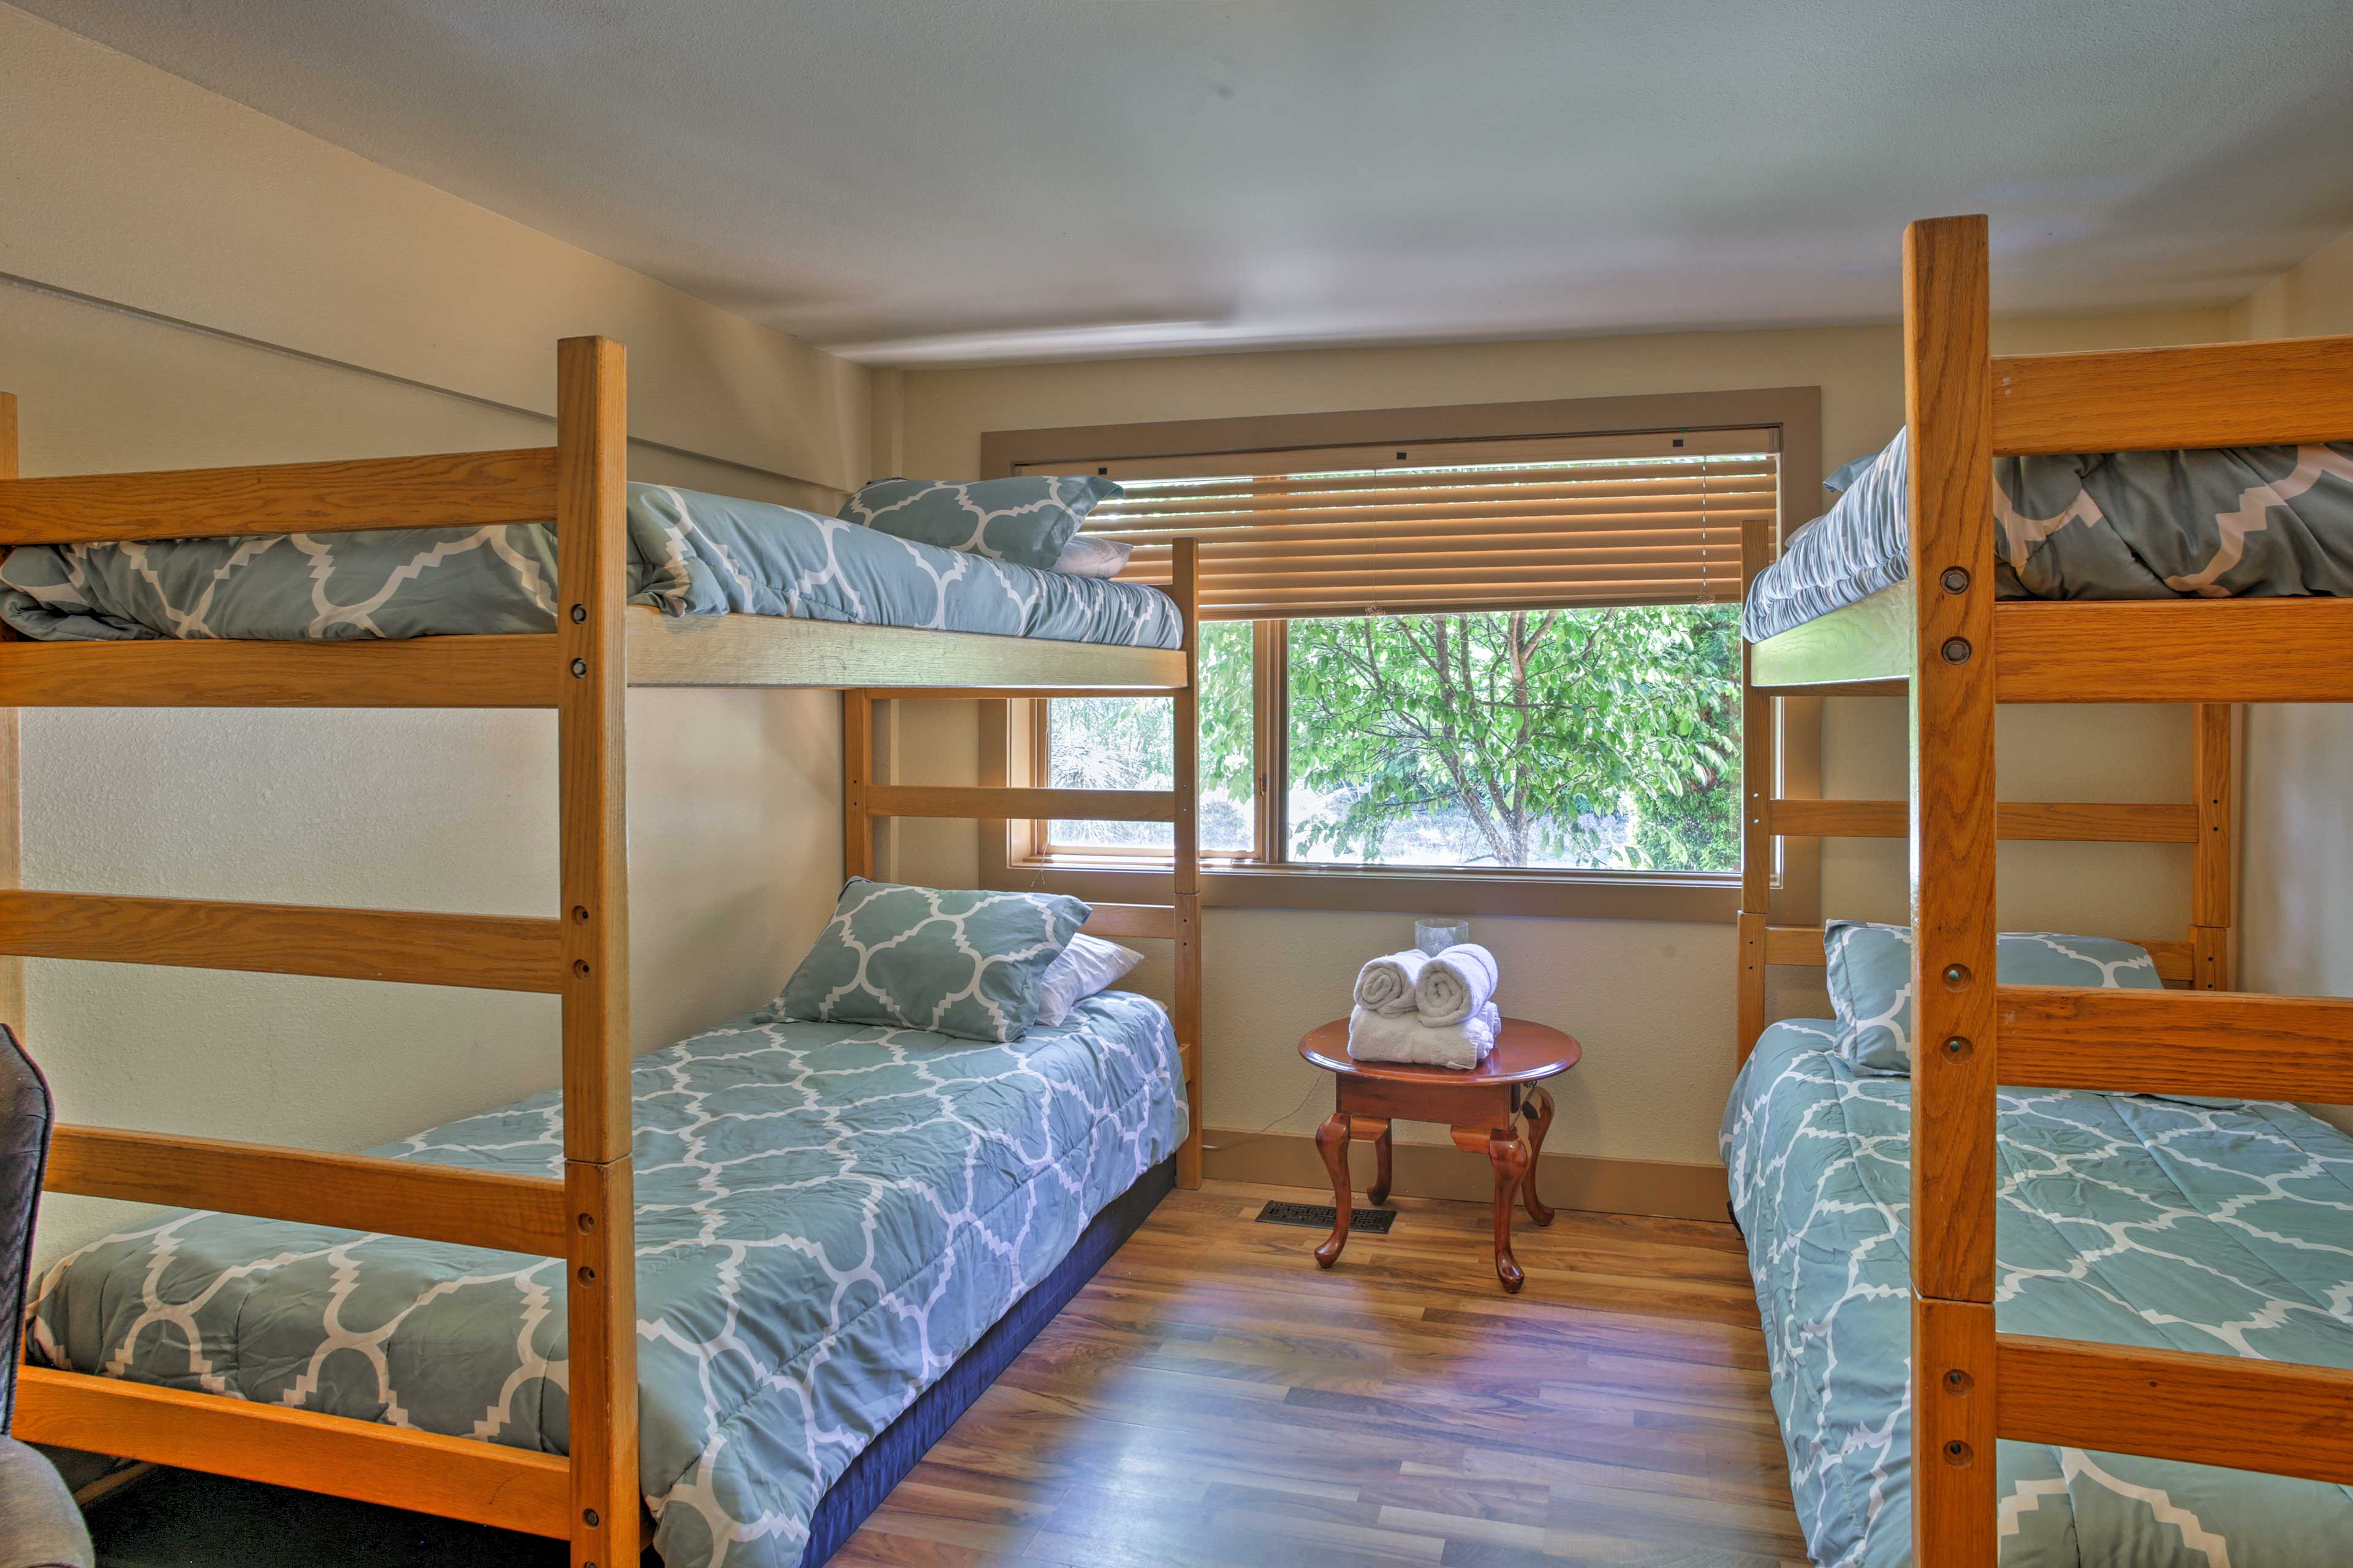 A second room with twin-over-twin bunk beds lets the kids stay close.